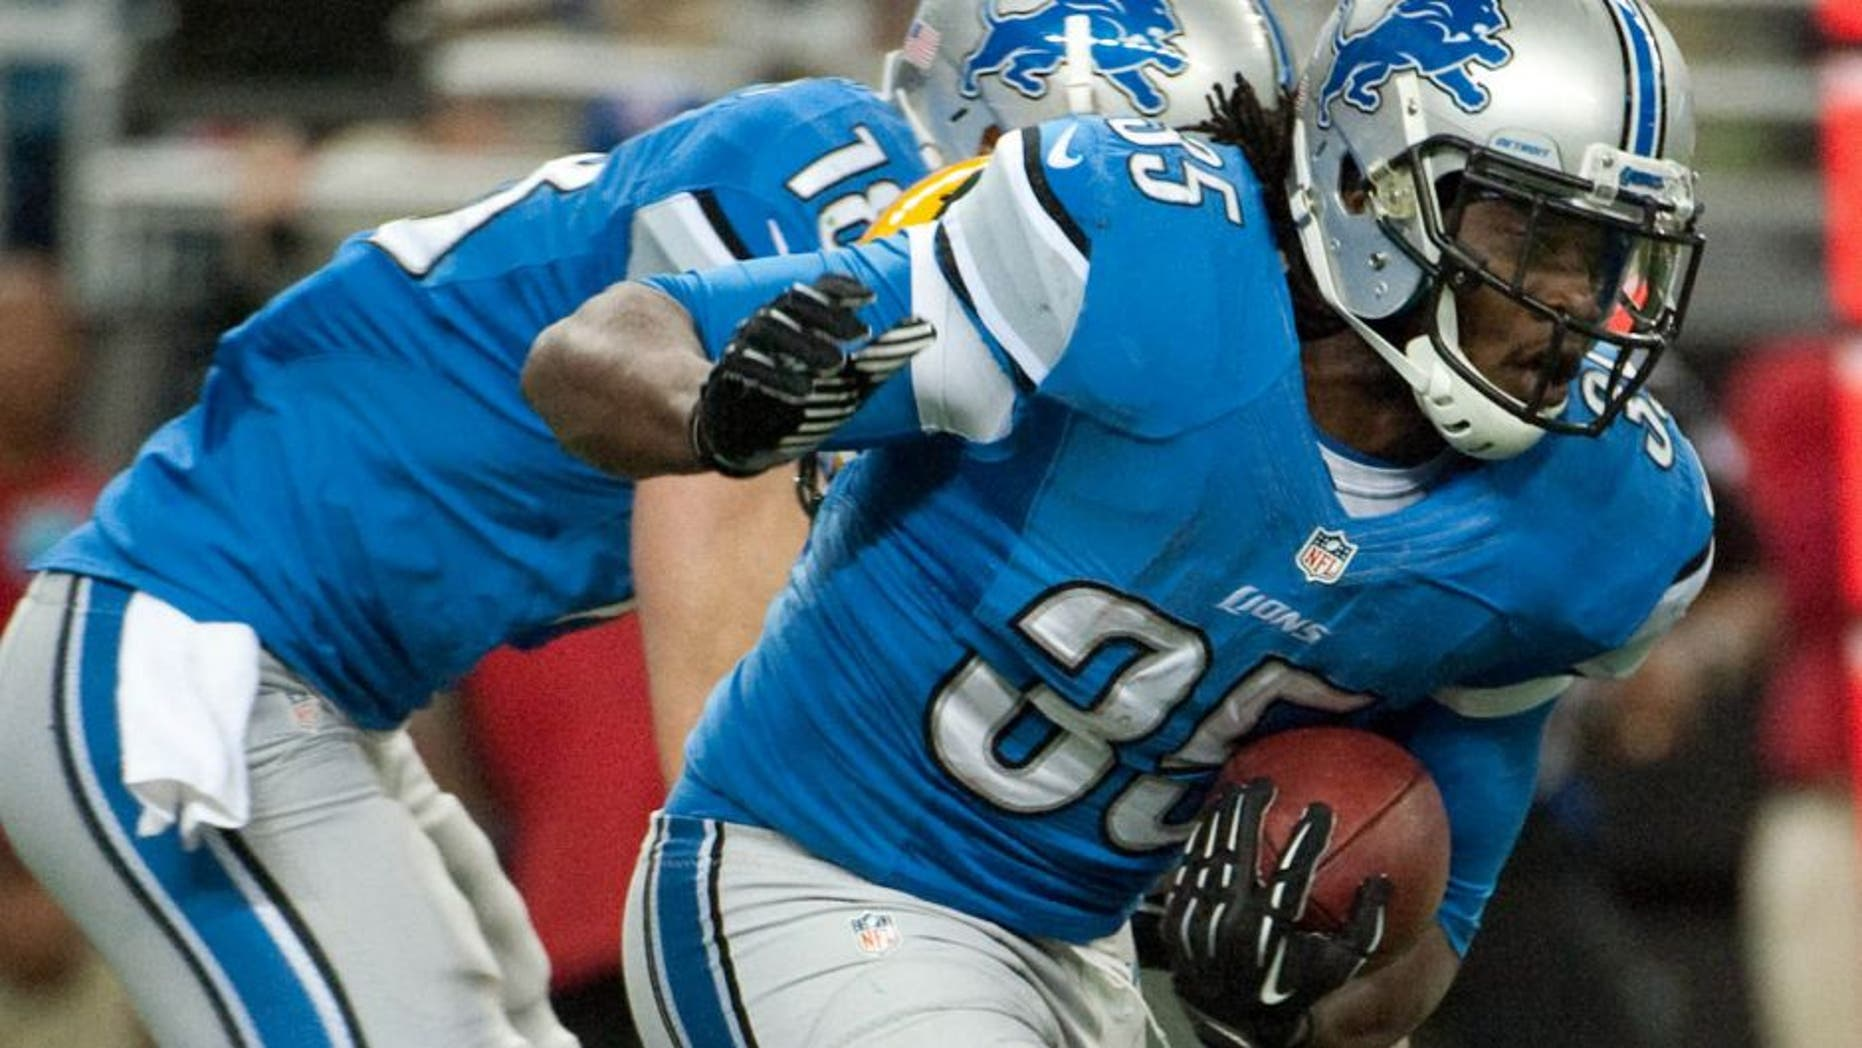 Nov 28, 2013; Detroit, MI, USA; Detroit Lions running back Joique Bell (35) runs the ball during the first quarter against the Green Bay Packers during a NFL football game on Thanksgiving at Ford Field. Mandatory Credit: Tim Fuller-USA TODAY Sports